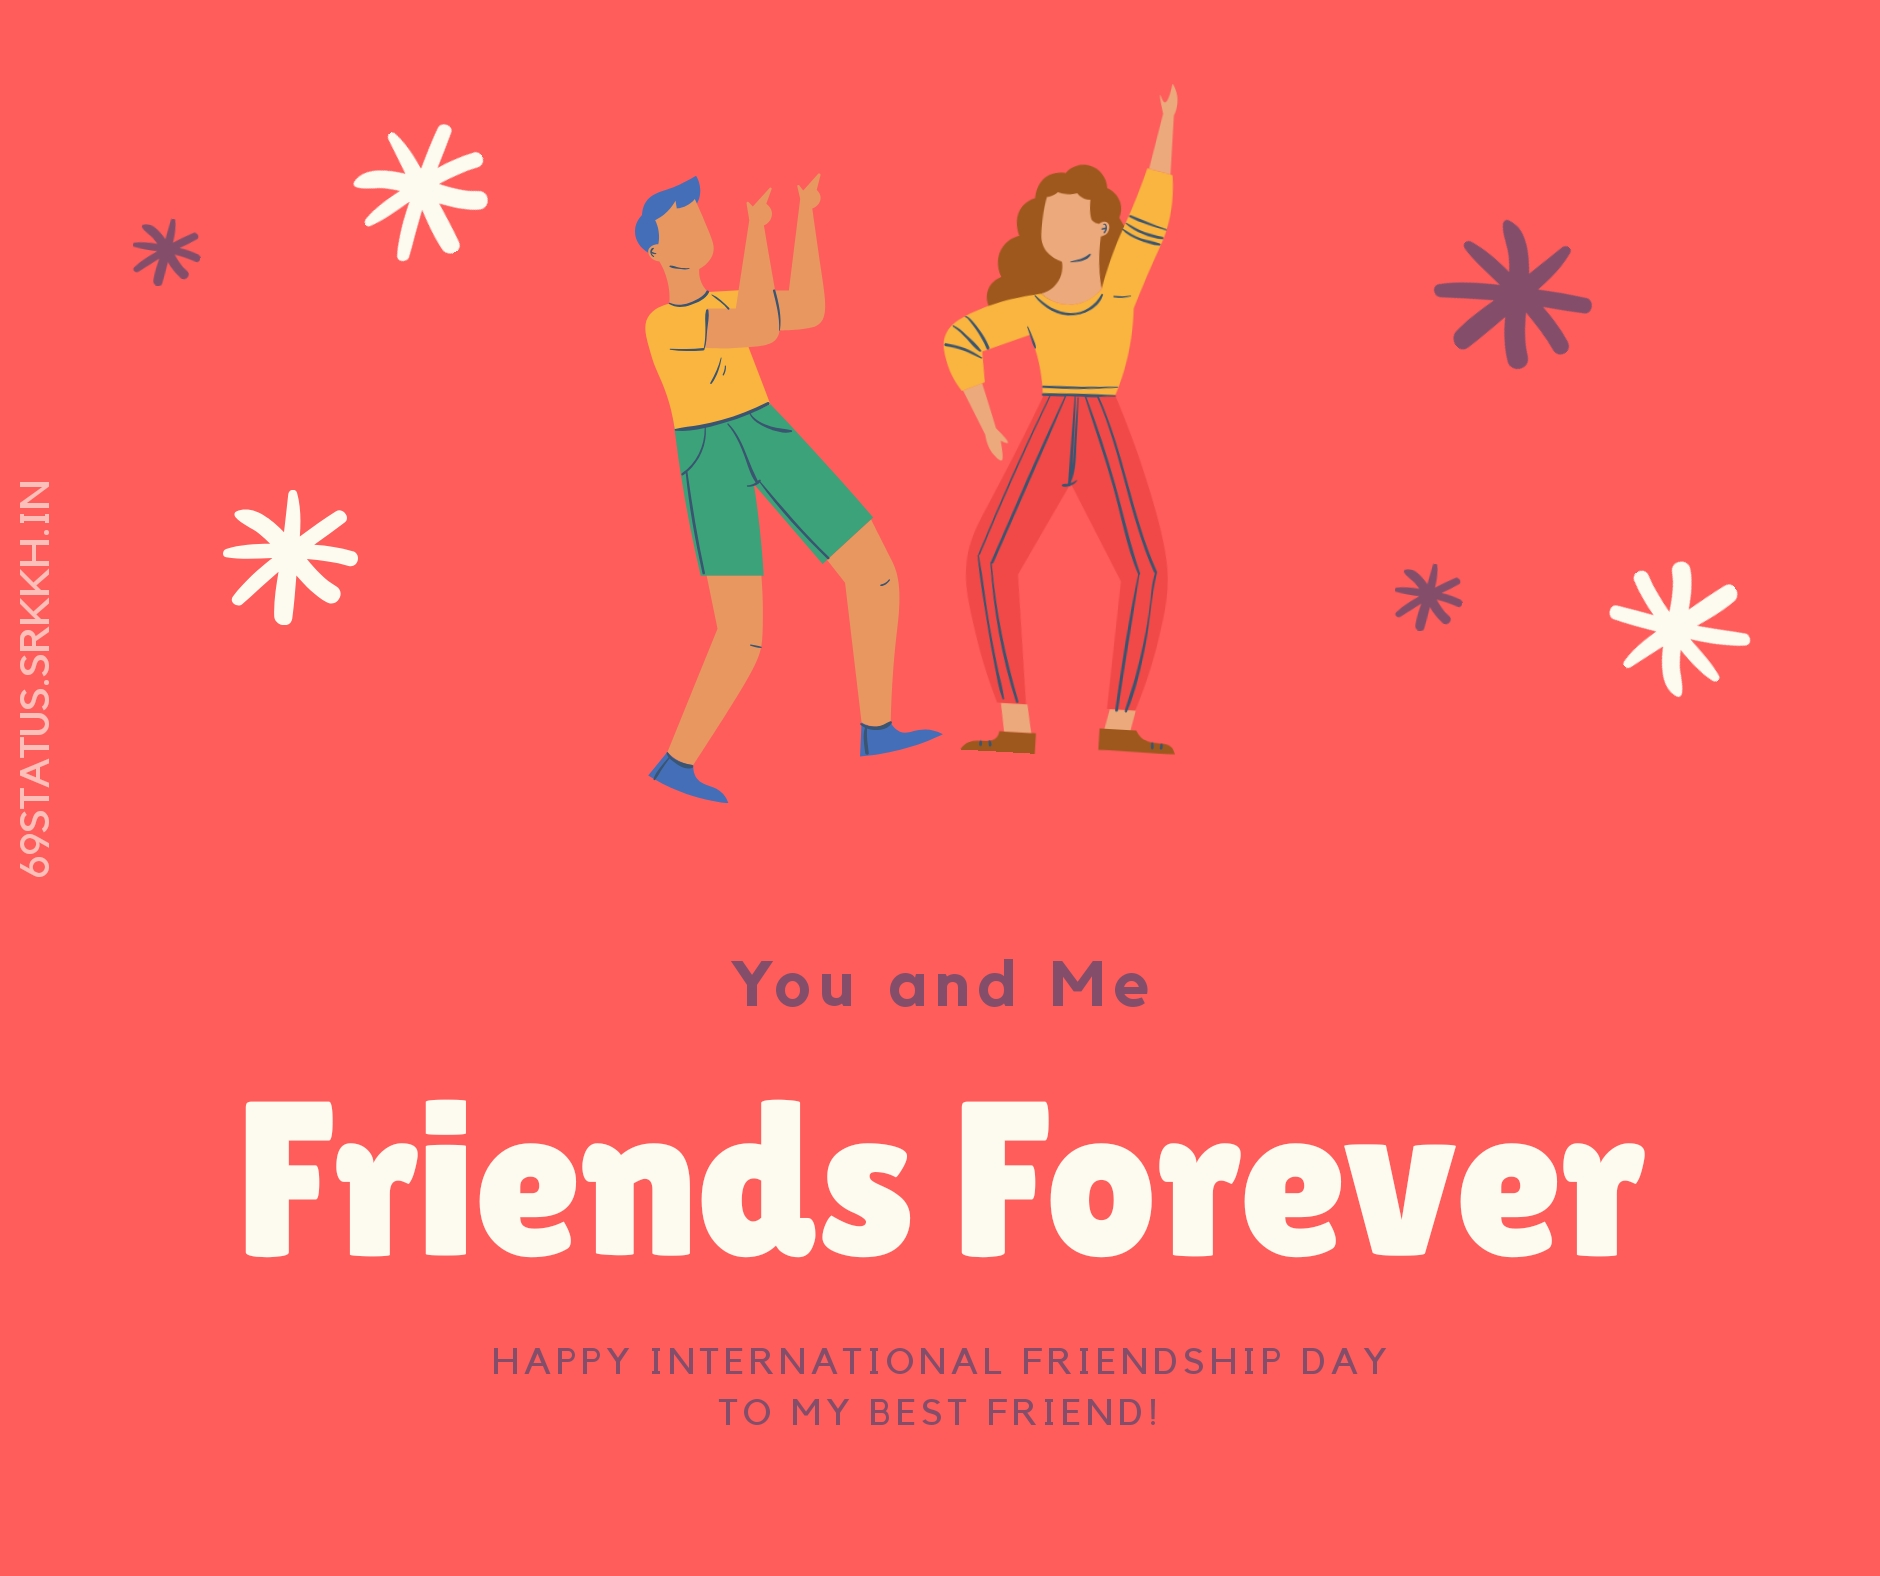 Happy Friendship Day Images for Facebook full HD free download.